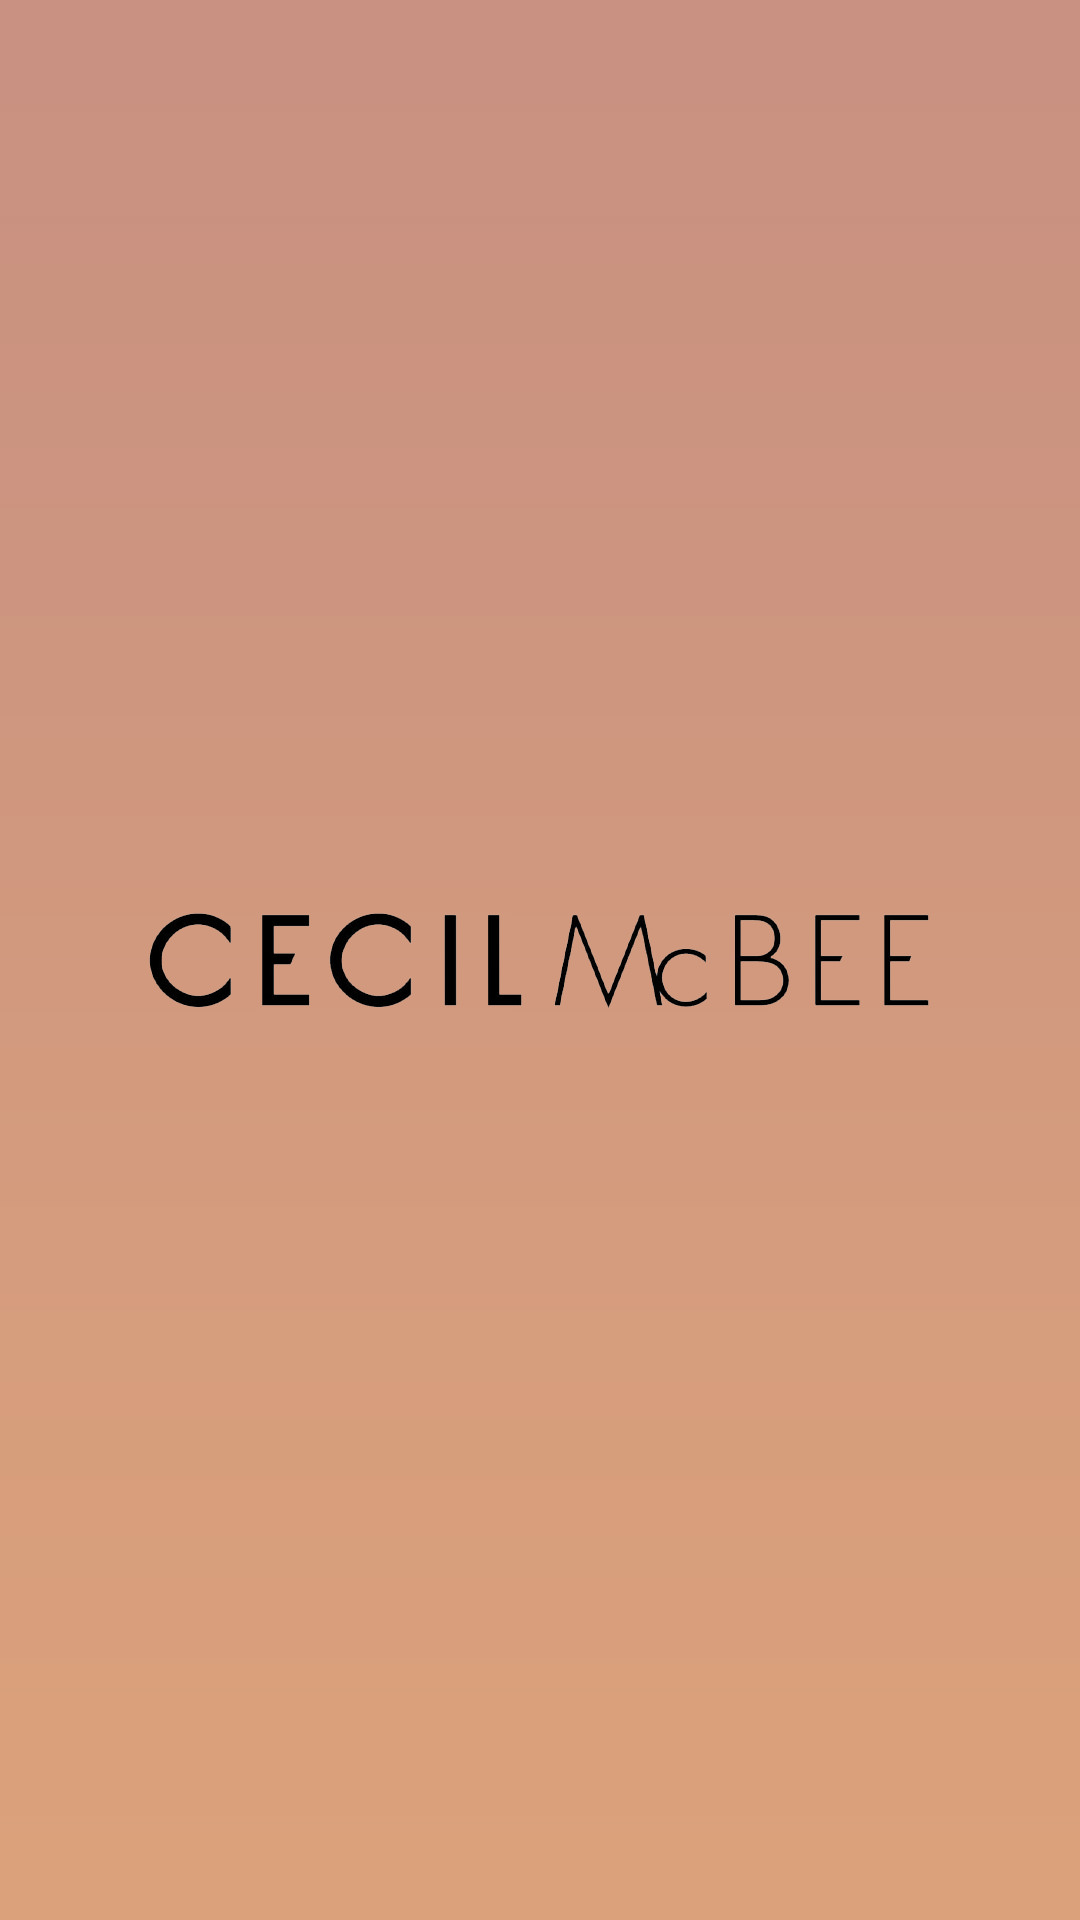 cecil00021 - セシルマクビー[CECIL McBEE]の高画質スマホ壁紙23枚 [iPhone&Androidに対応]